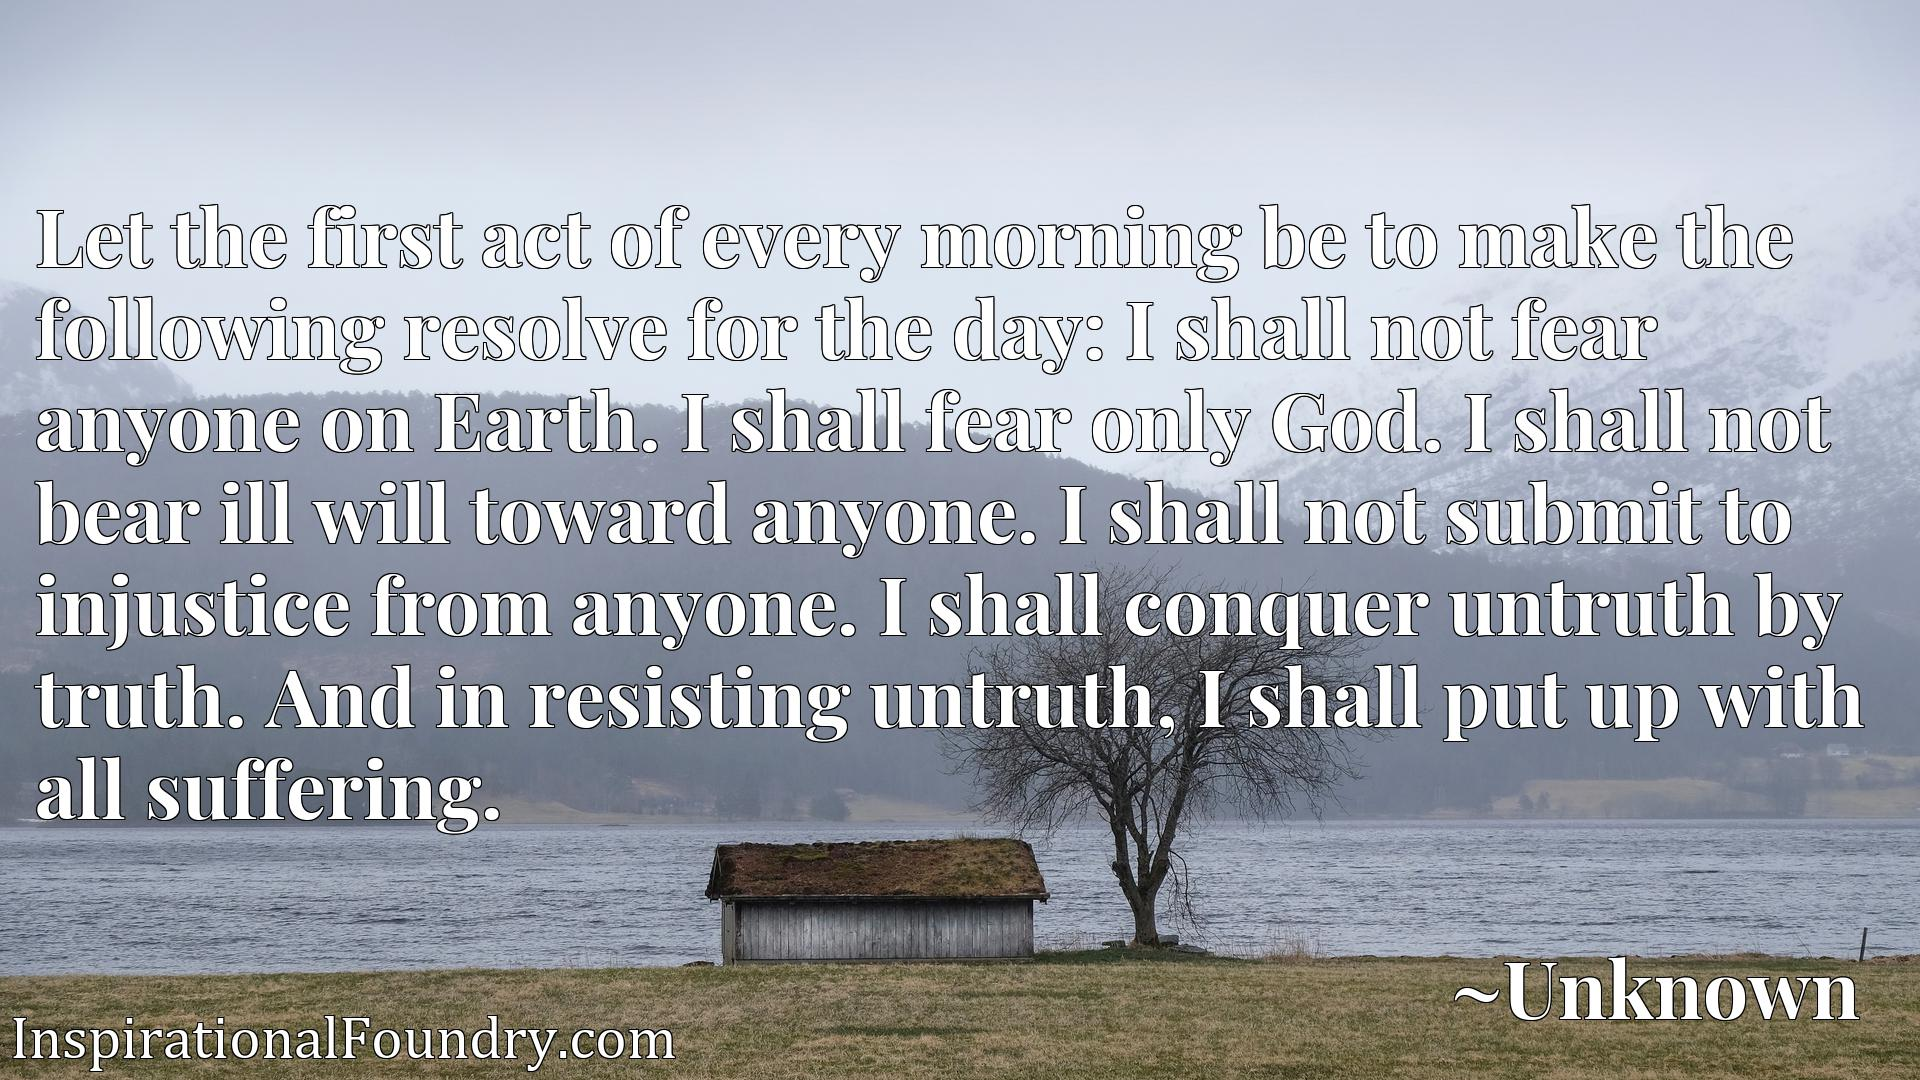 Let the first act of every morning be to make the following resolve for the day: I shall not fear anyone on Earth. I shall fear only God. I shall not bear ill will toward anyone. I shall not submit to injustice from anyone. I shall conquer untruth by truth. And in resisting untruth, I shall put up with all suffering.